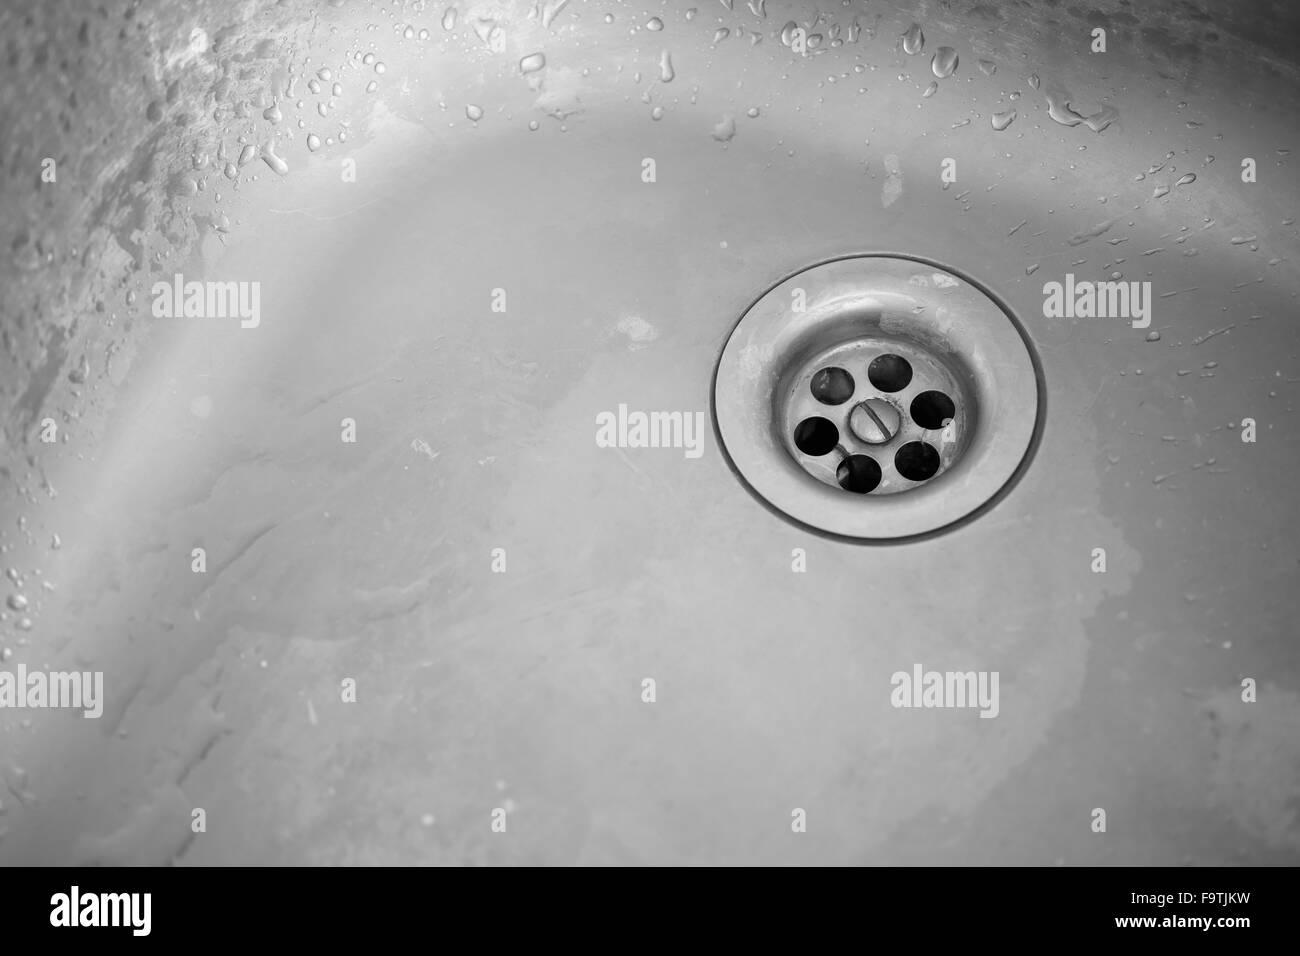 Old Dirty Sink Plug Hole Of A Kitchen Sink Black And White Image Stock Photo Alamy